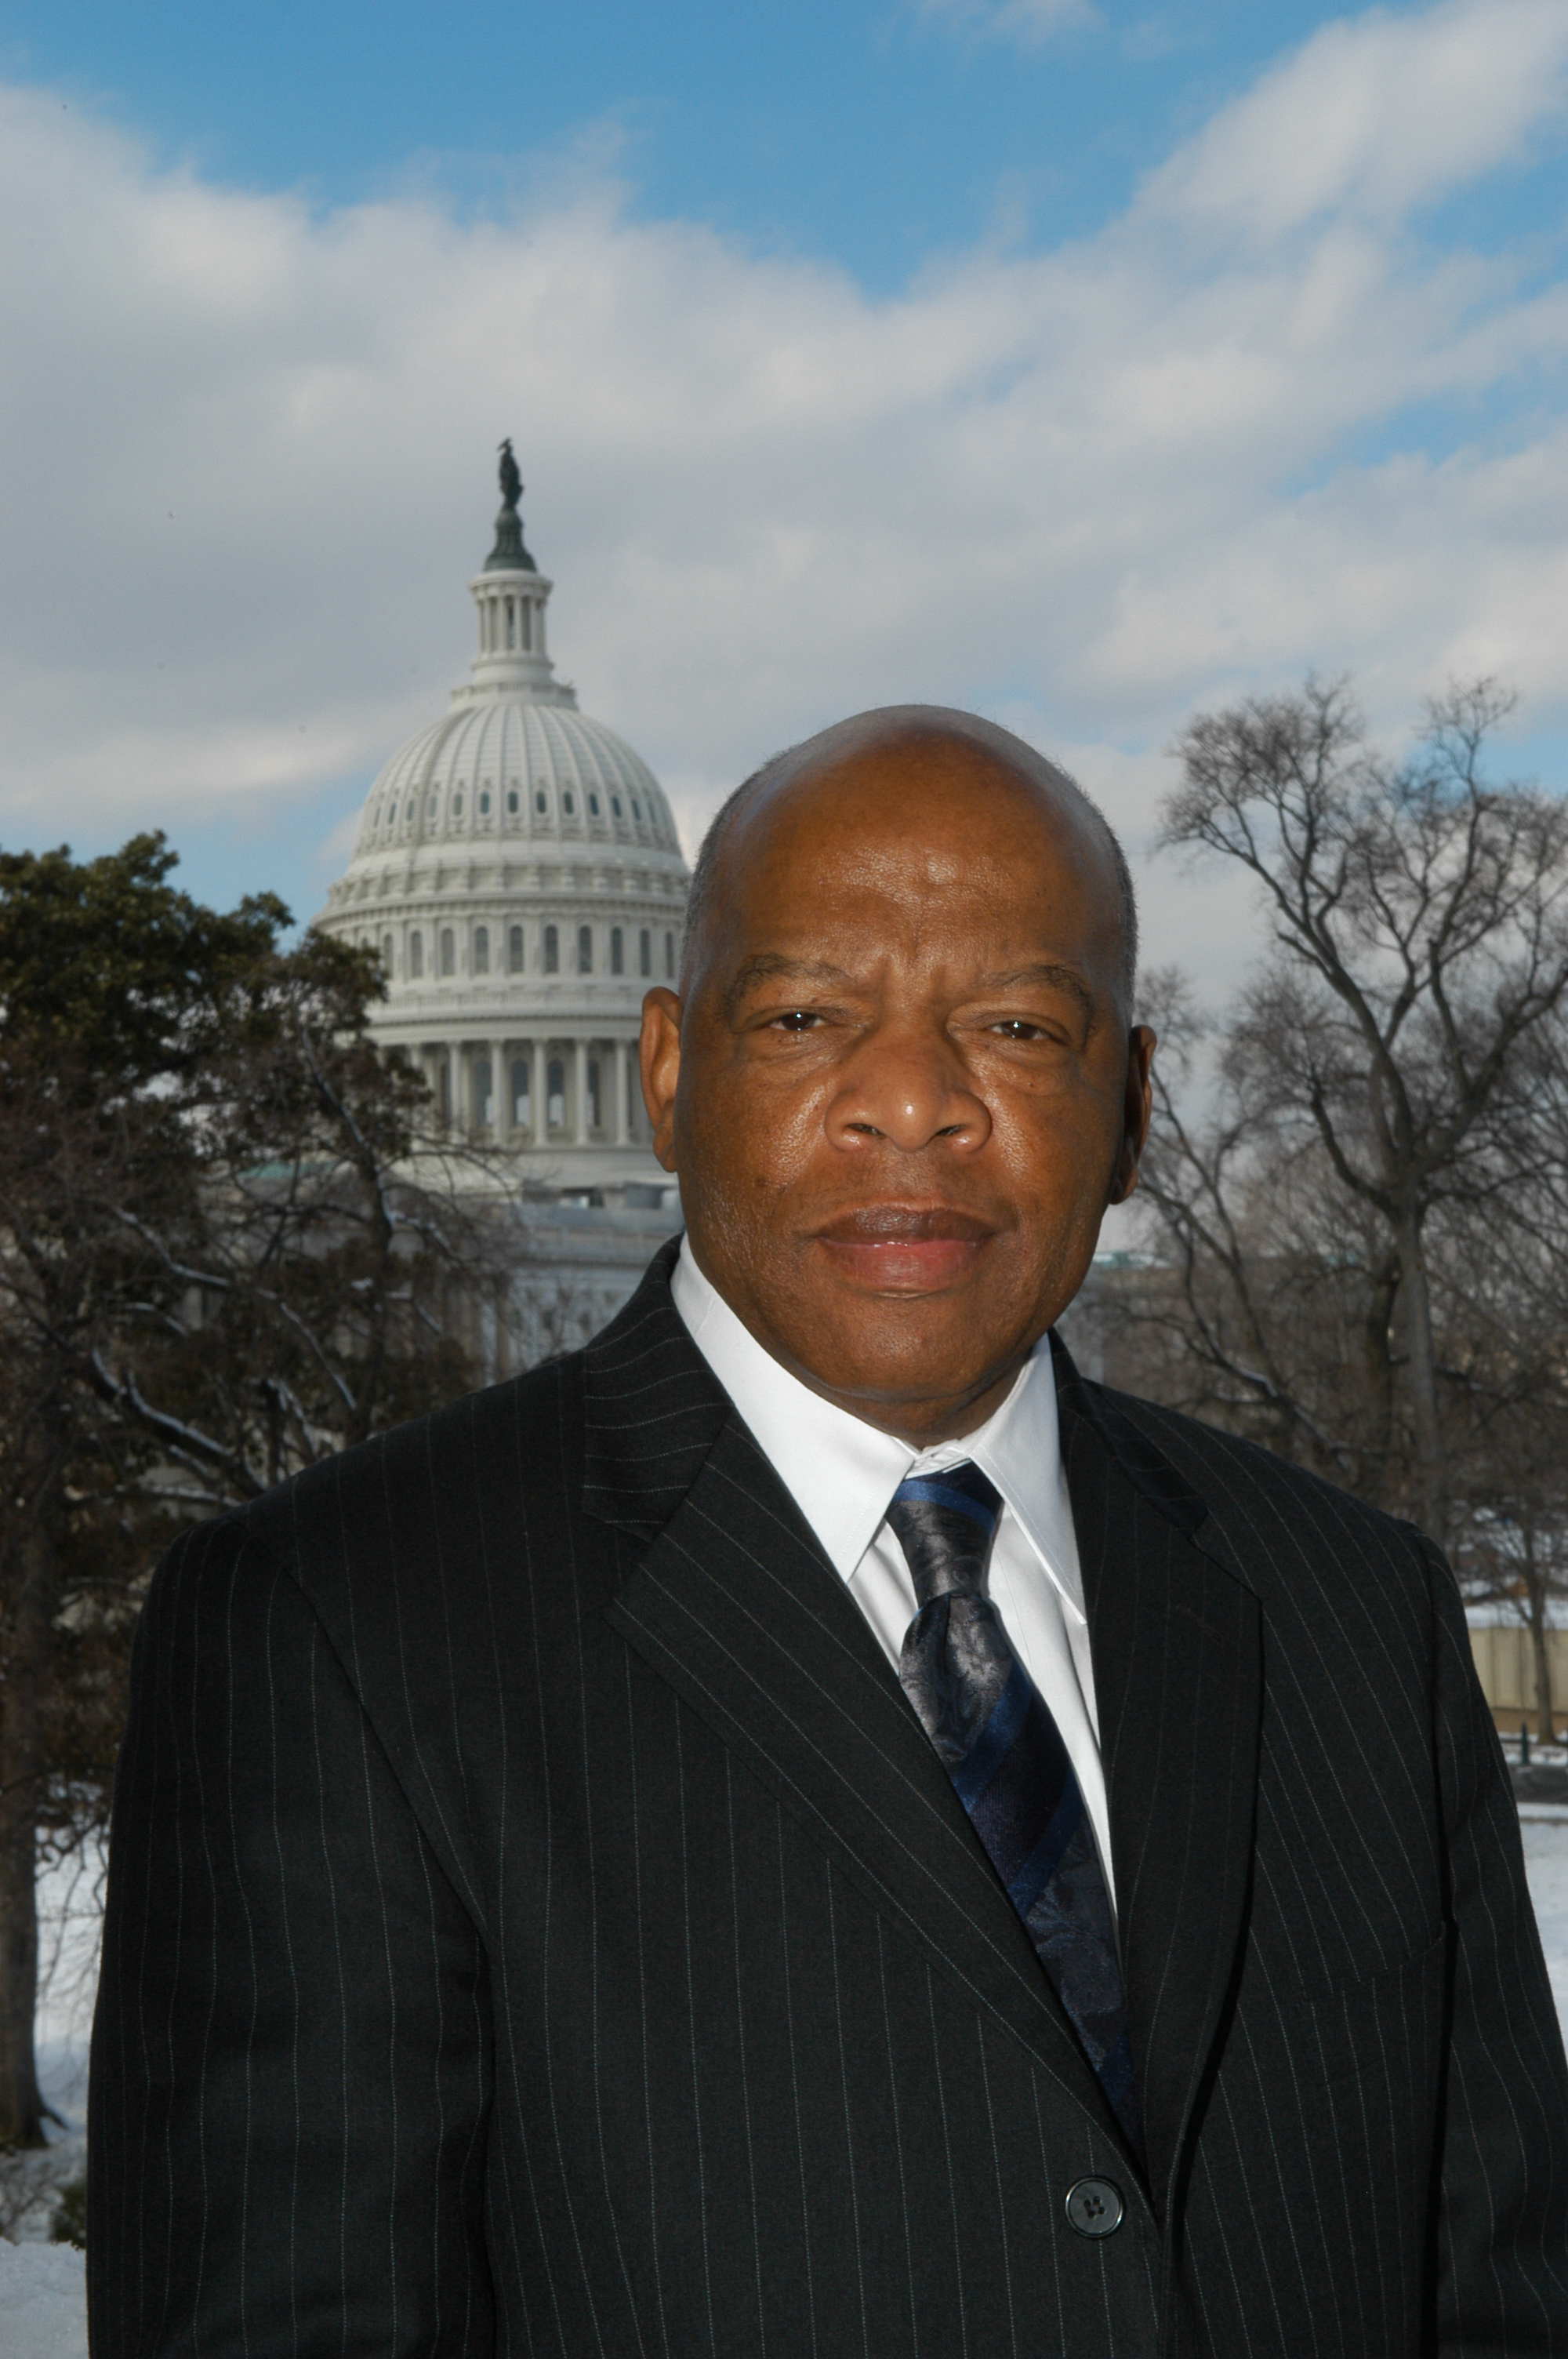 Congressman John Lewis (D-Ga.) boycotted the Trump inauguration (Image from Wikimedia Commons).